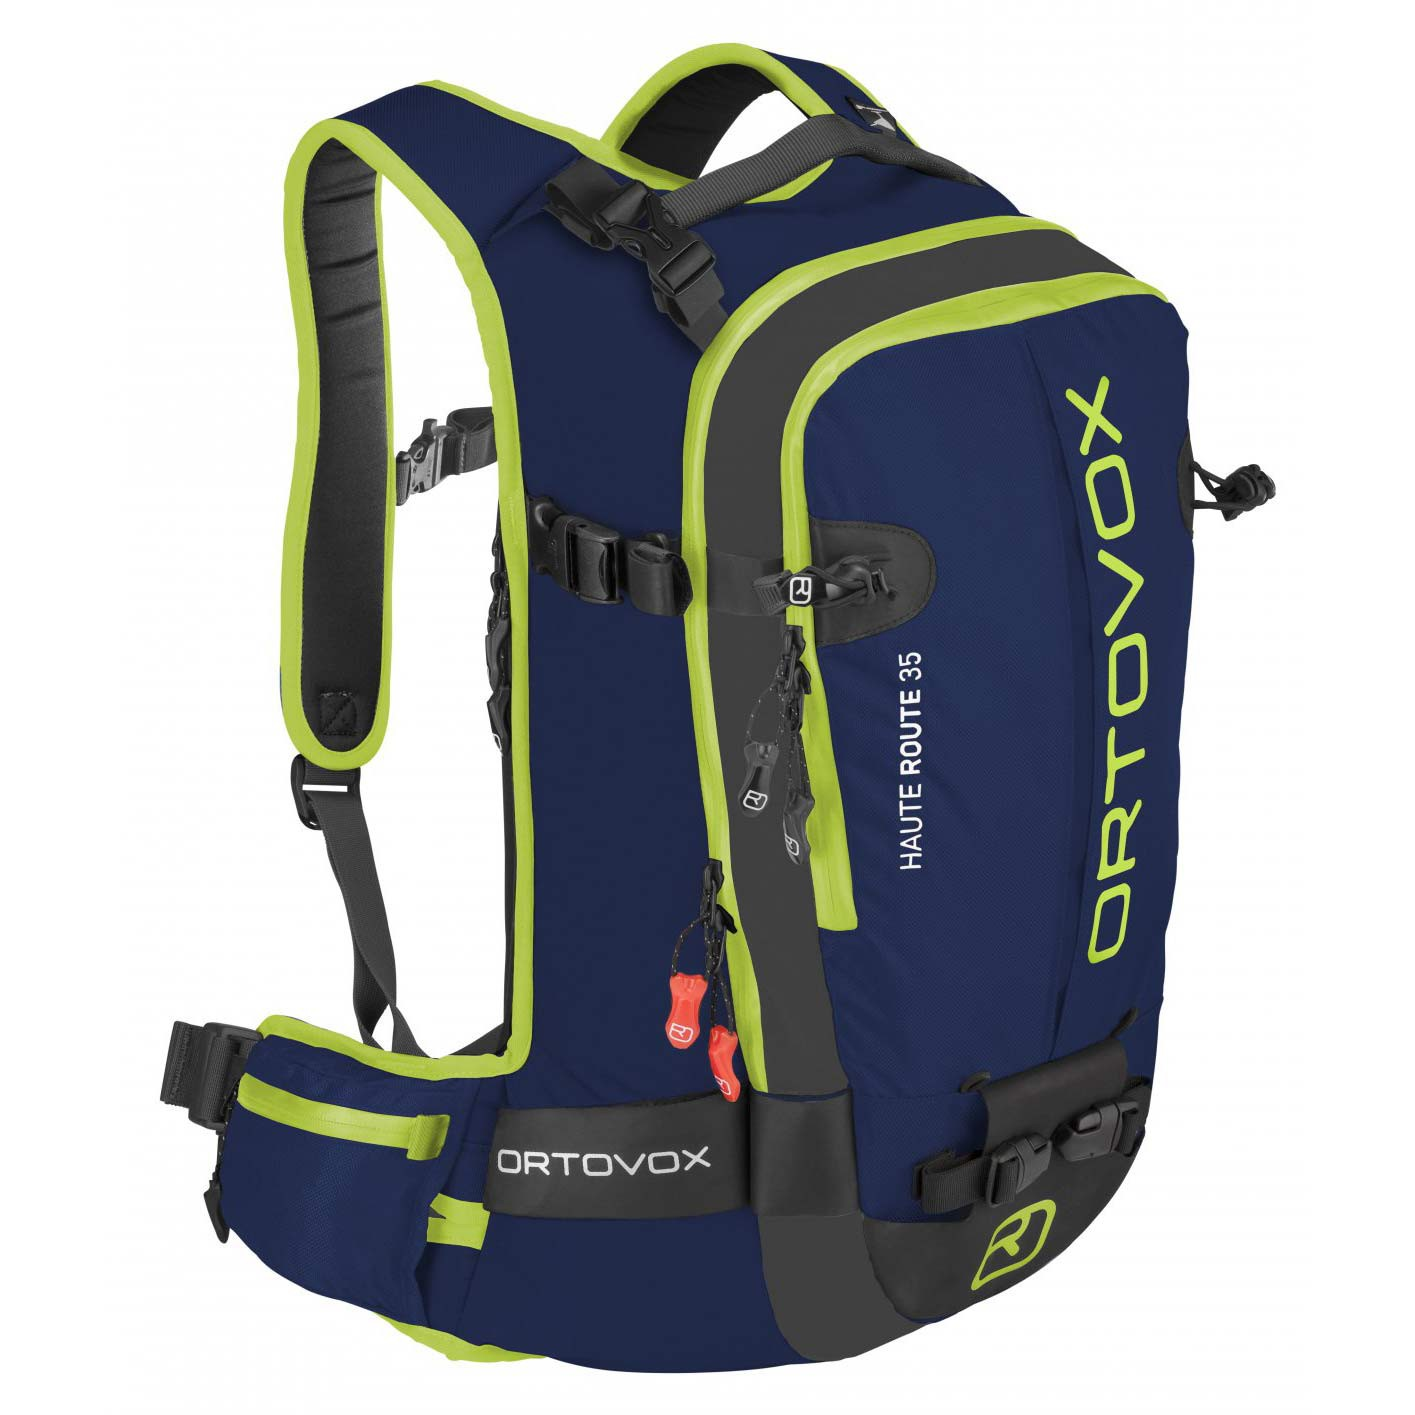 dakine heli 11l backpack with Search on 2643 Dakine Ski Backpacks additionally 231073699337 together with Sac  C3 A0 Dos Dakine 935401641691 furthermore Dakine Heli Pack 11l Kingston furthermore Dakine Heli Pack 12l Peat Camo.